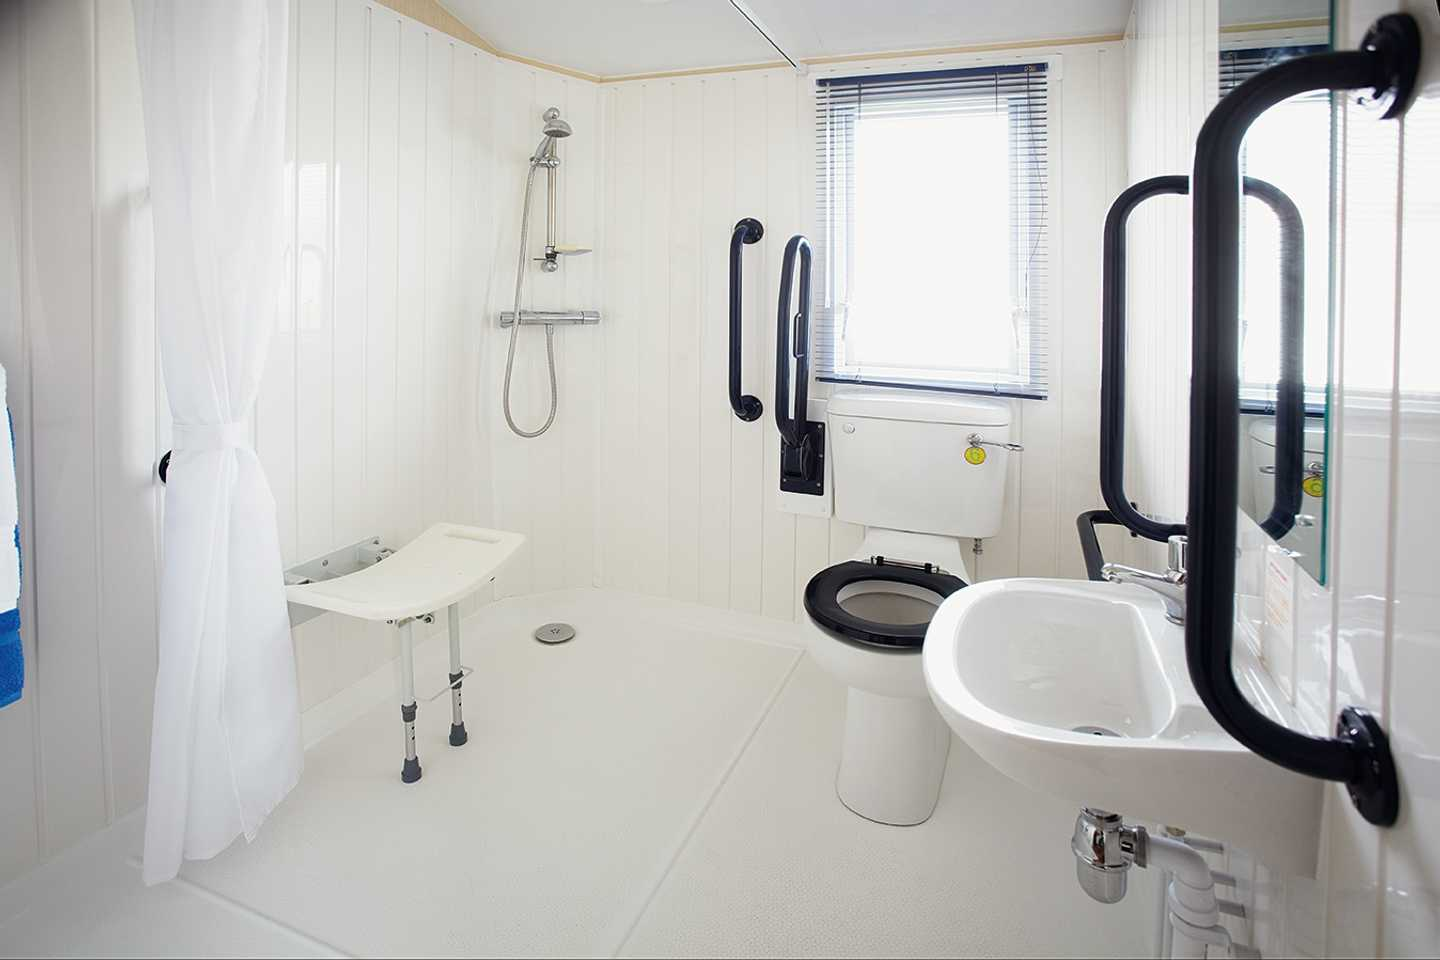 An Adapted caravan bathroom with a sit down shower, sink and toilet